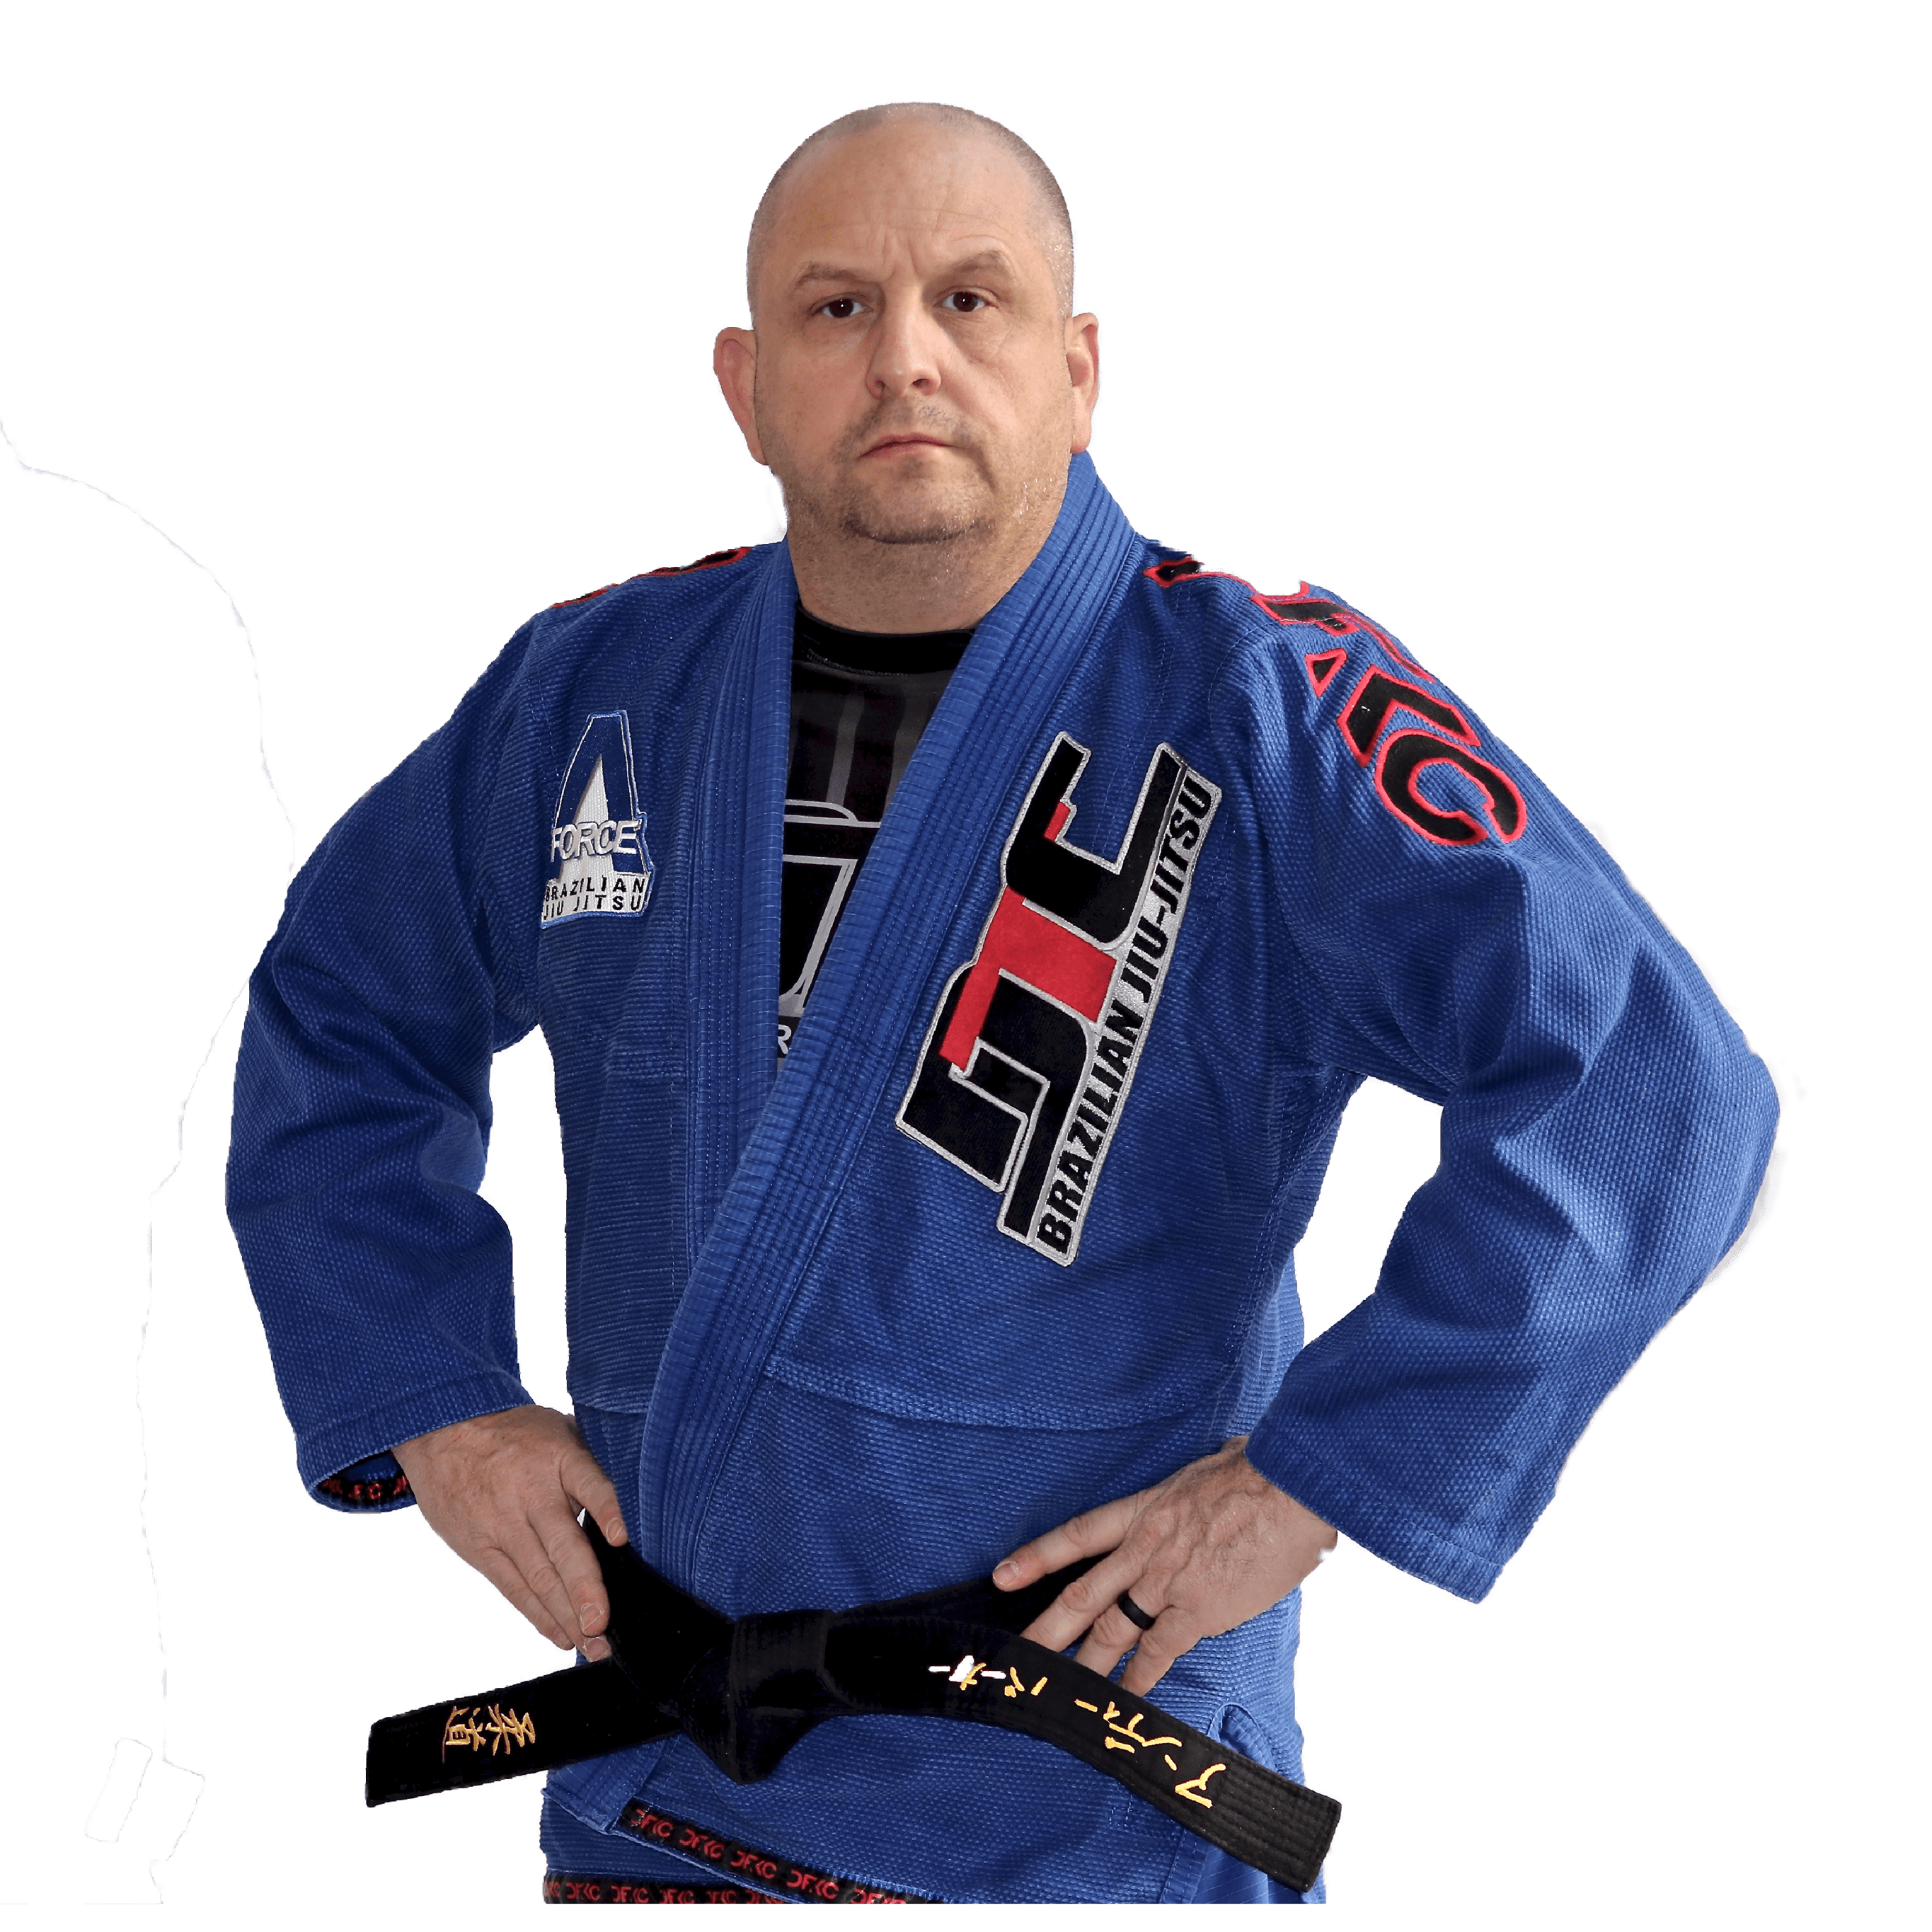 Chesapeake Martial Arts